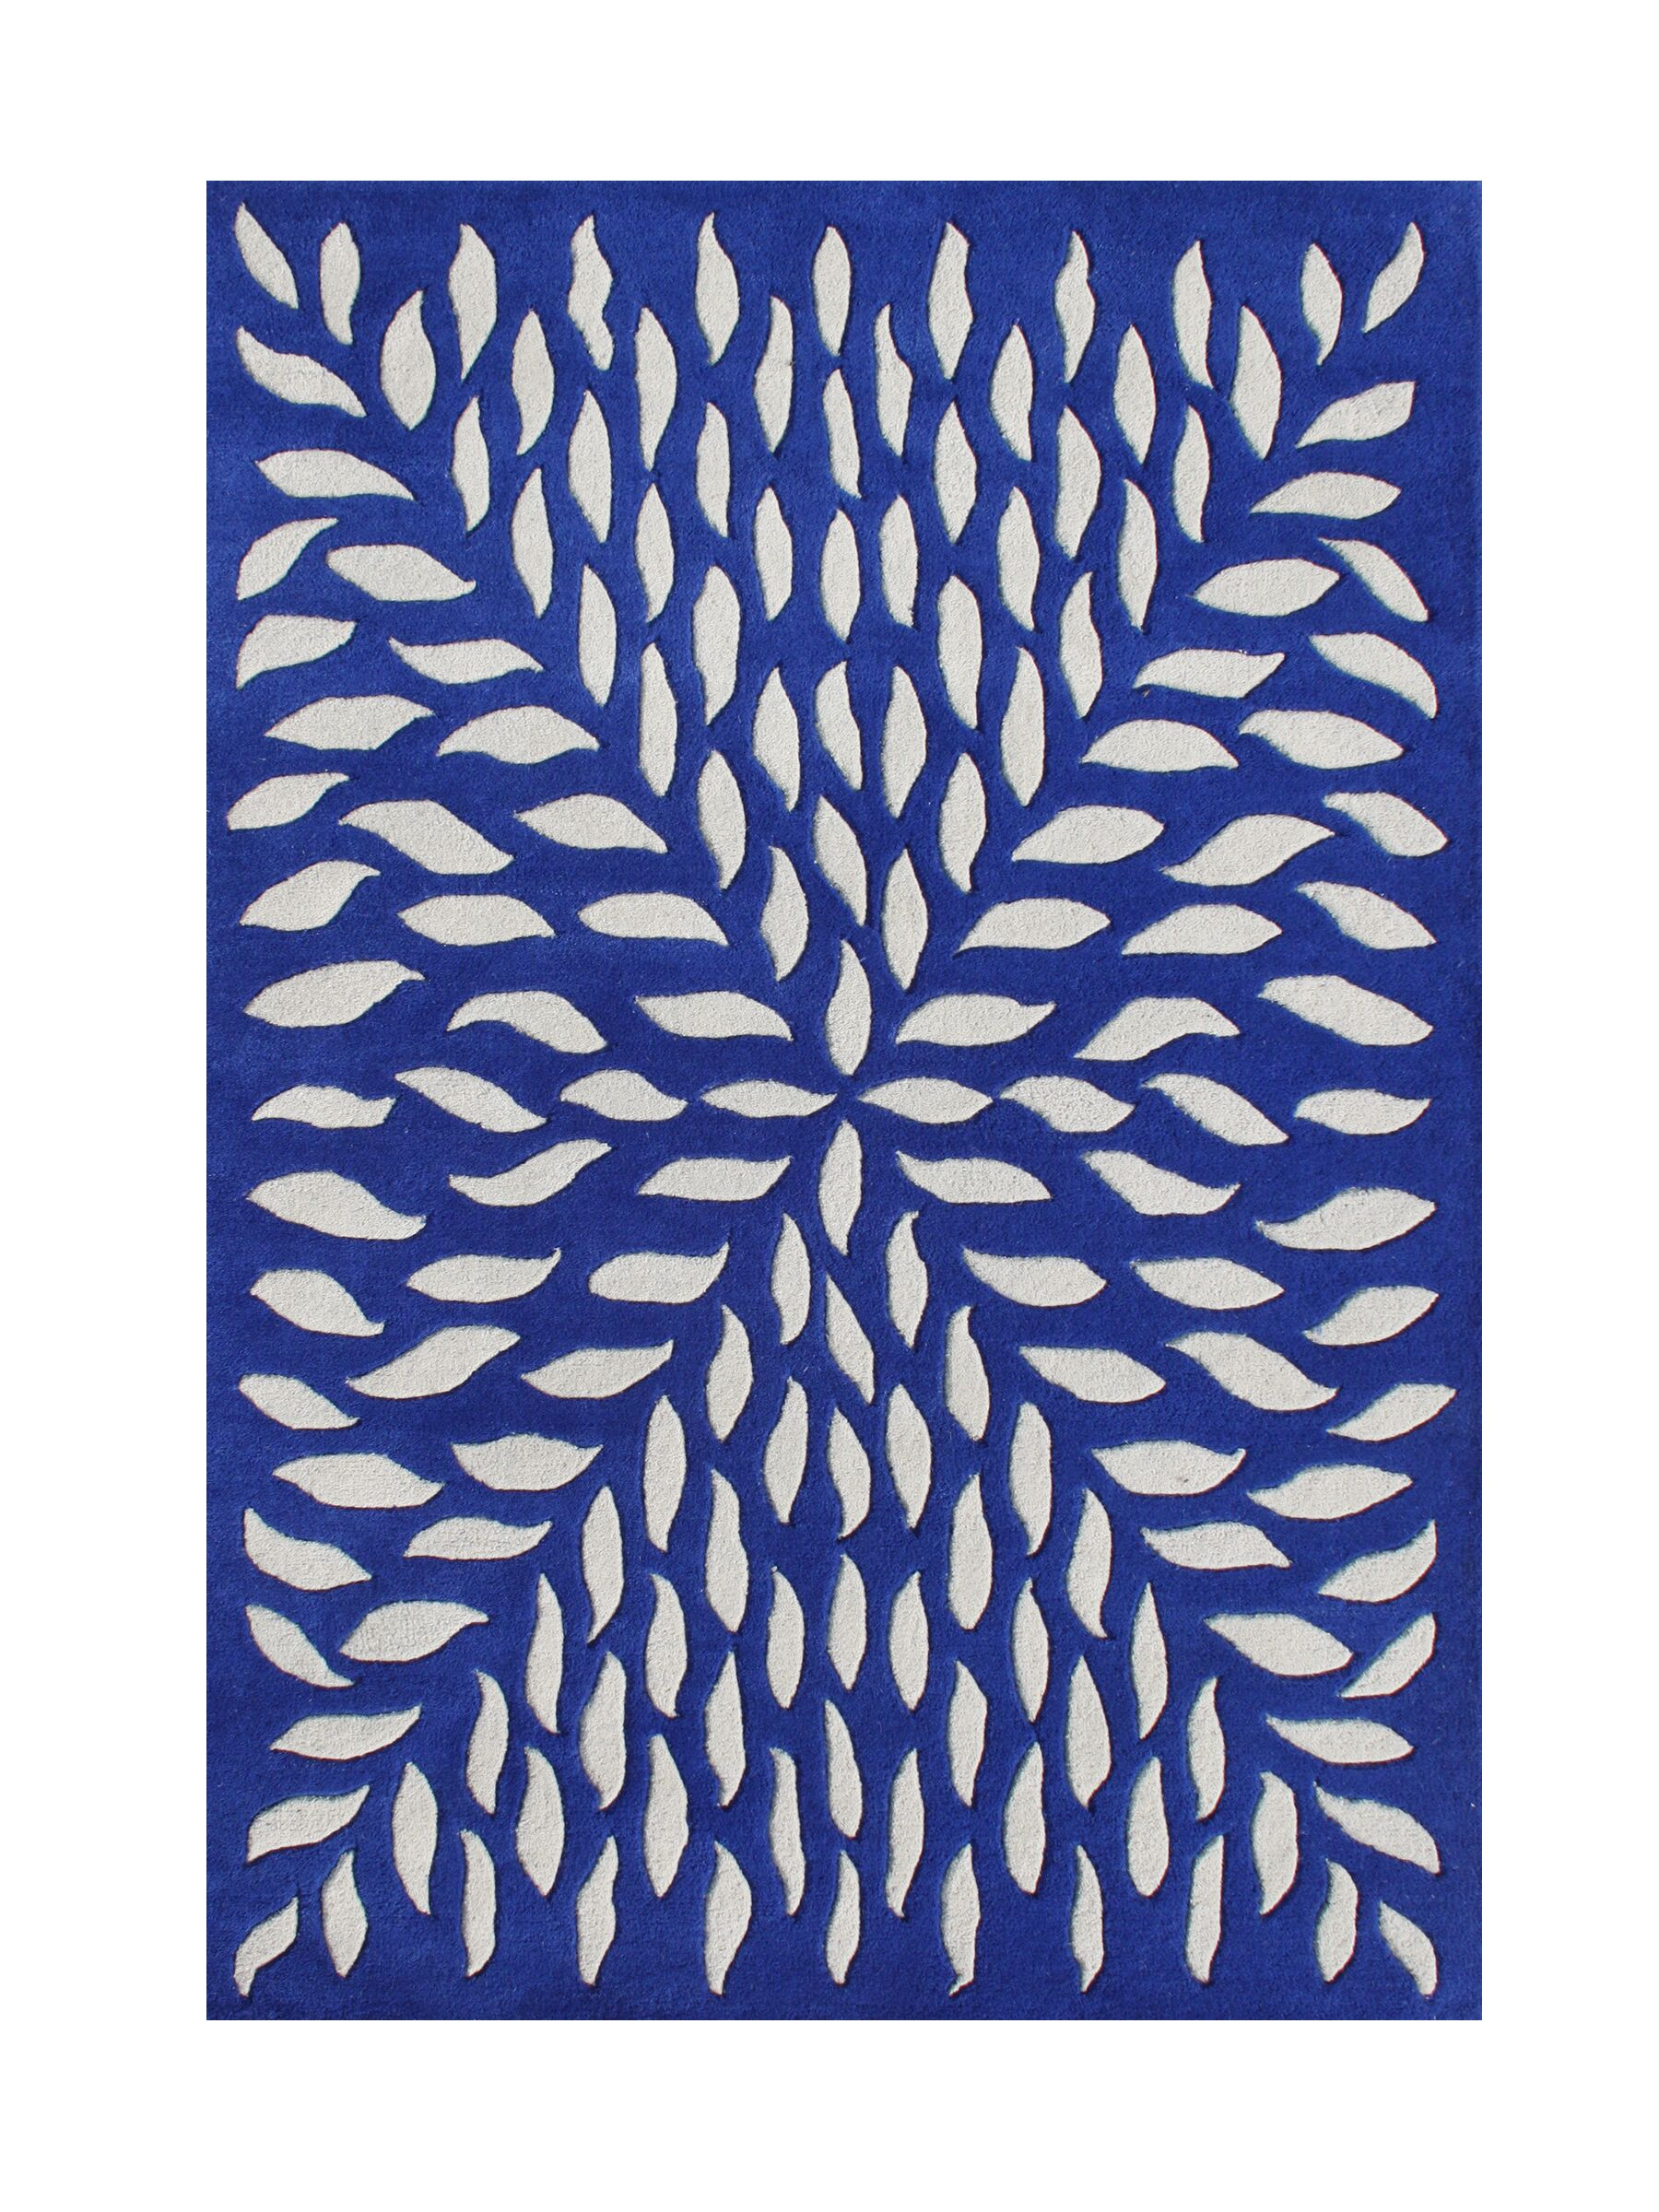 Wedderburn Hand-Tufted Blue Area Rug Rug Size: Rectangle 8' x 10'